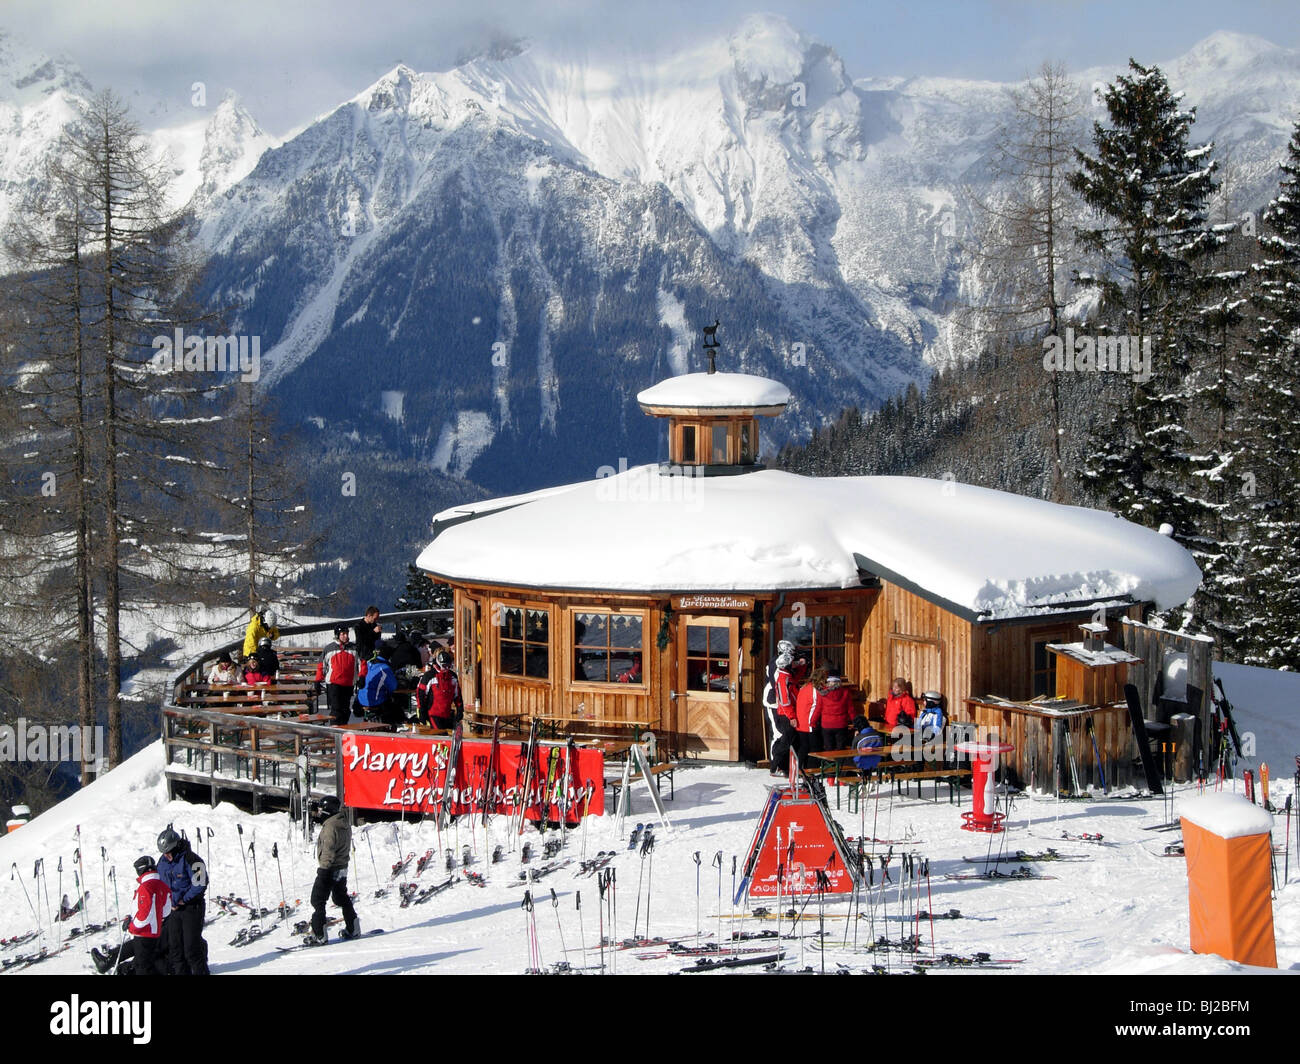 skiers on the piste at Hauser Kaibling in Austria heading towards Schladming and Planai Harrys Larch restaurant - Stock Image